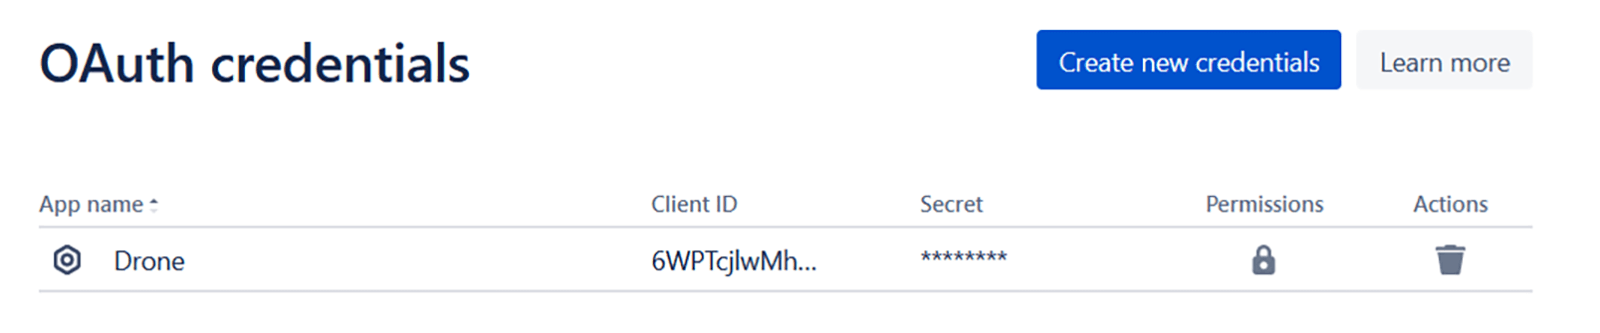 New Oauth credentials entry